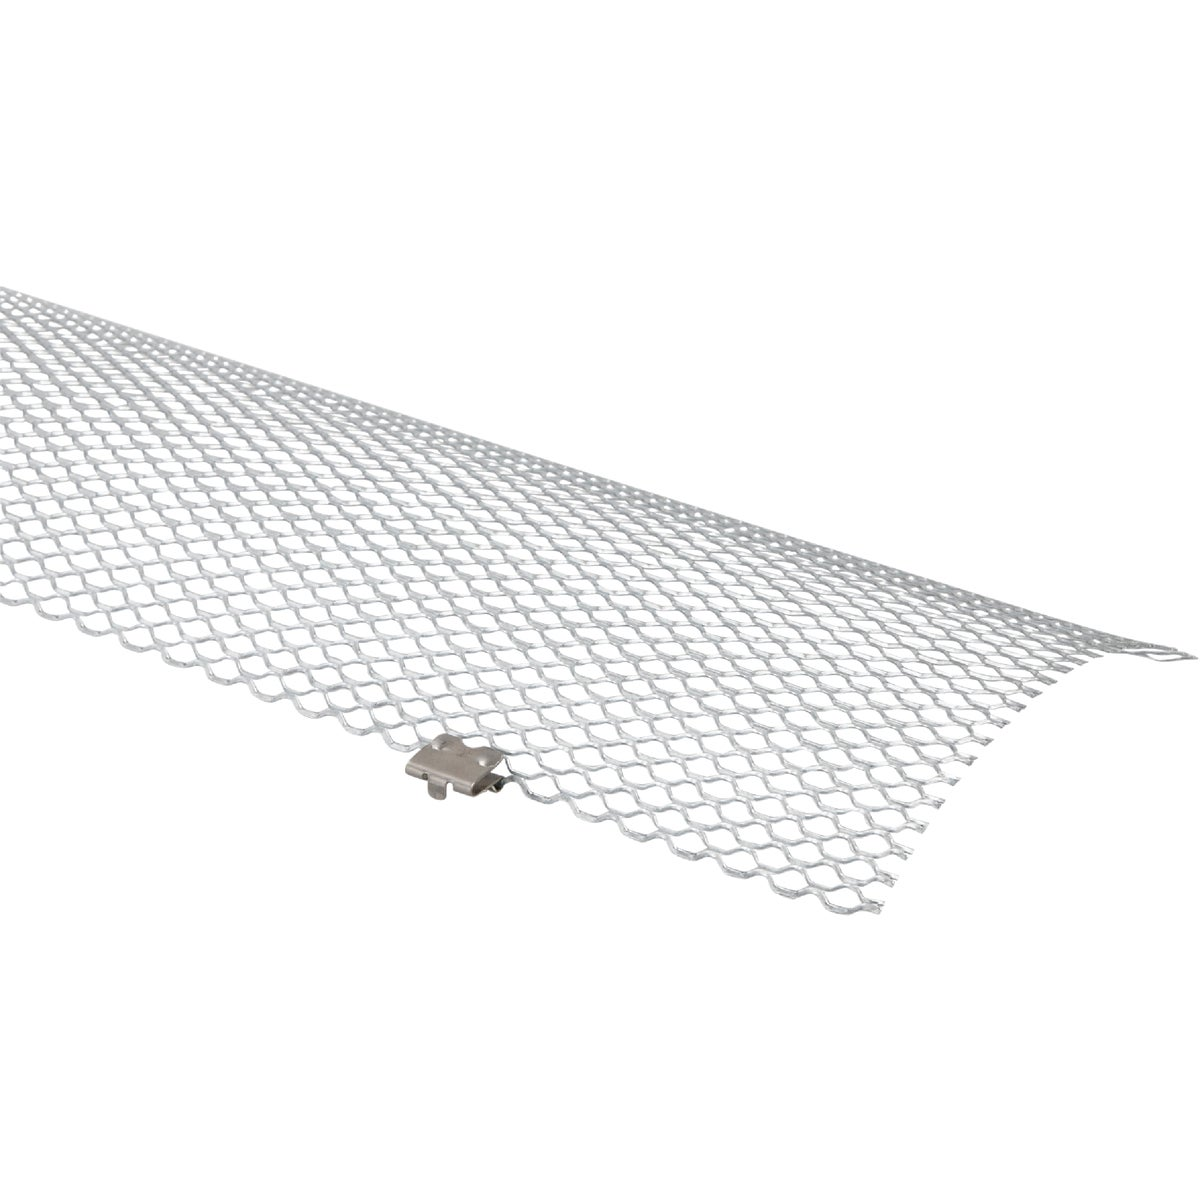 GALV HINGED GUTTER GUARD - 85280BX by Amerimax Home Prod